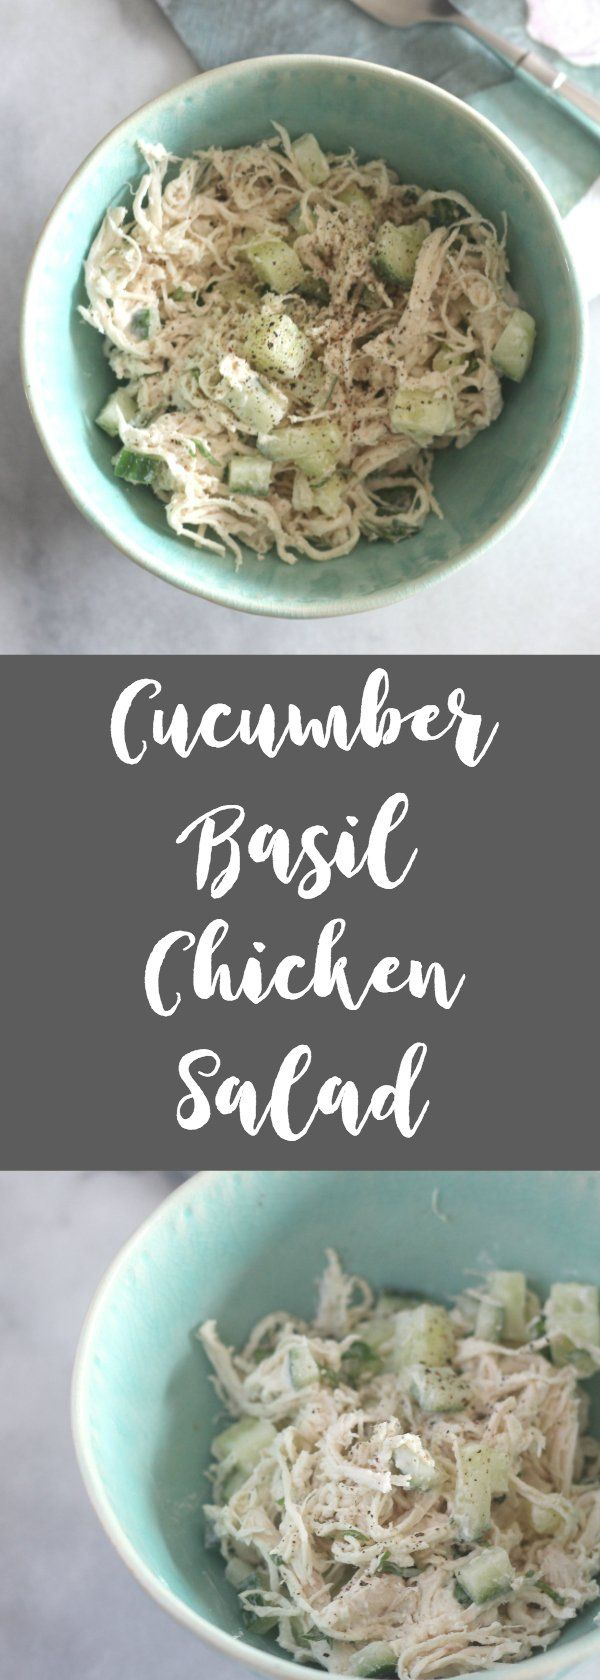 This cucumber basil chicken salad recipe is just slightly creamy and tangy. The … – Low Carb Lunch